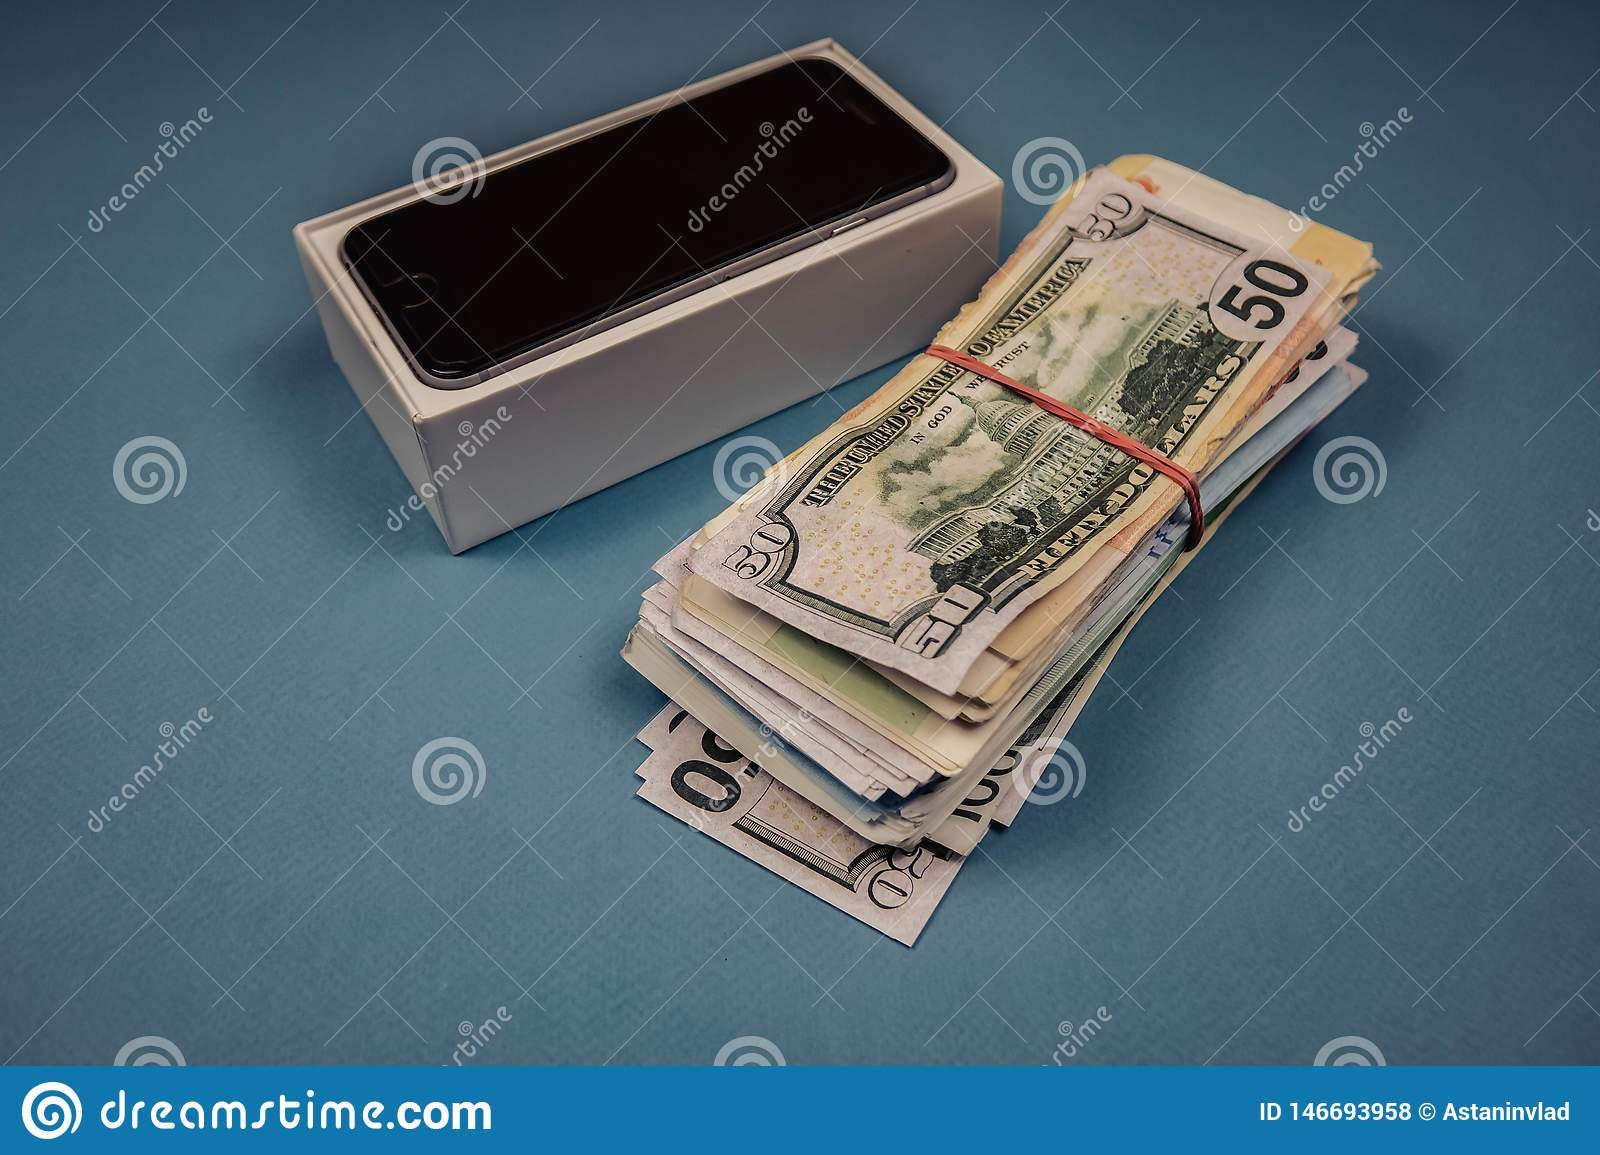 Apple iPhone devices and dollars on a blue monophonic background. Voronezh, Russia - May 3, 2019